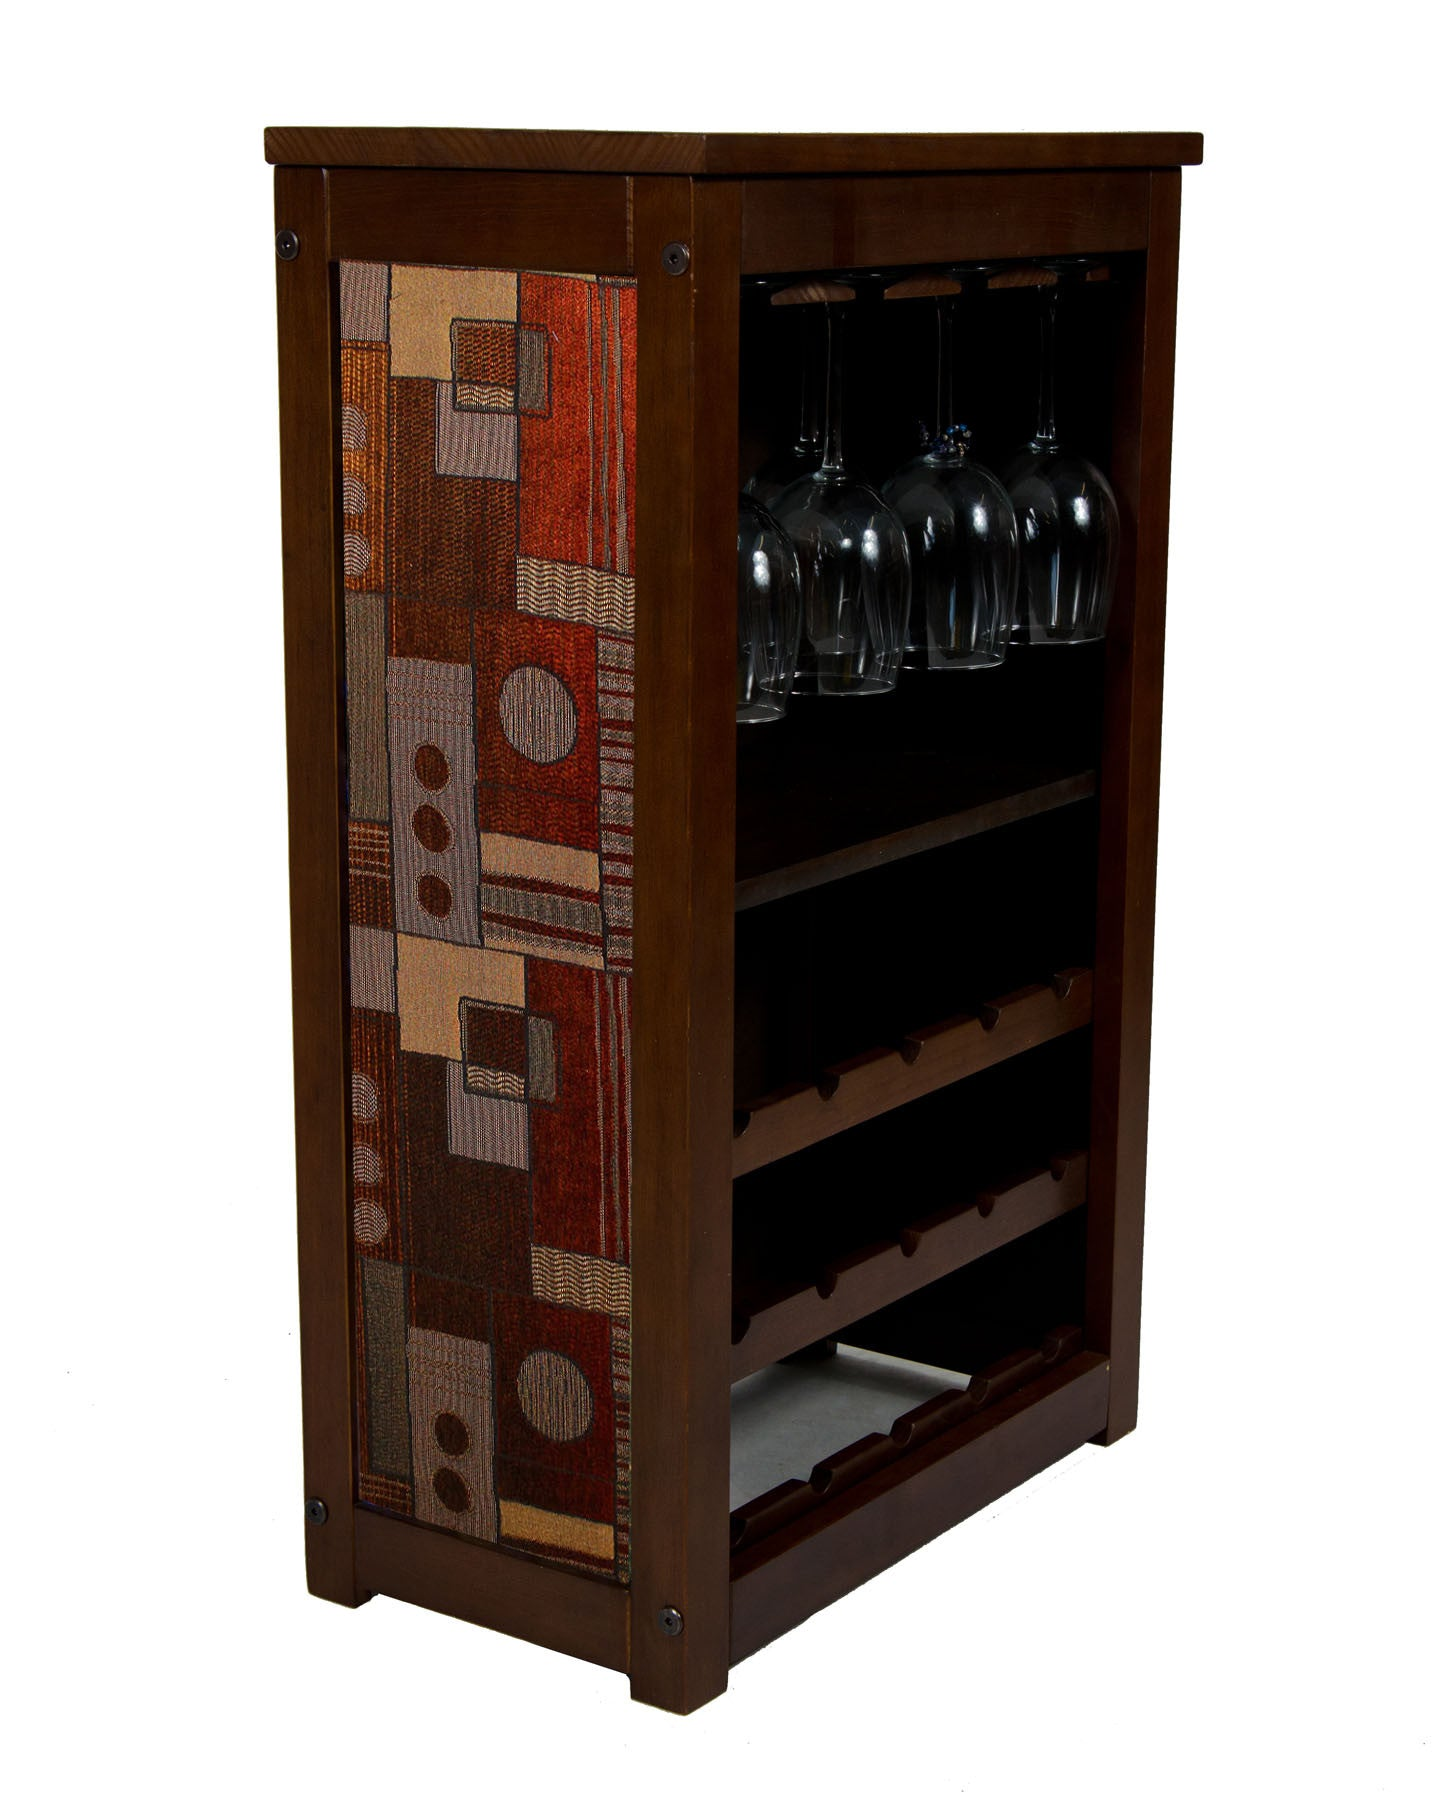 Wine Cabinet 15 bottles, Ginger fabric pattern